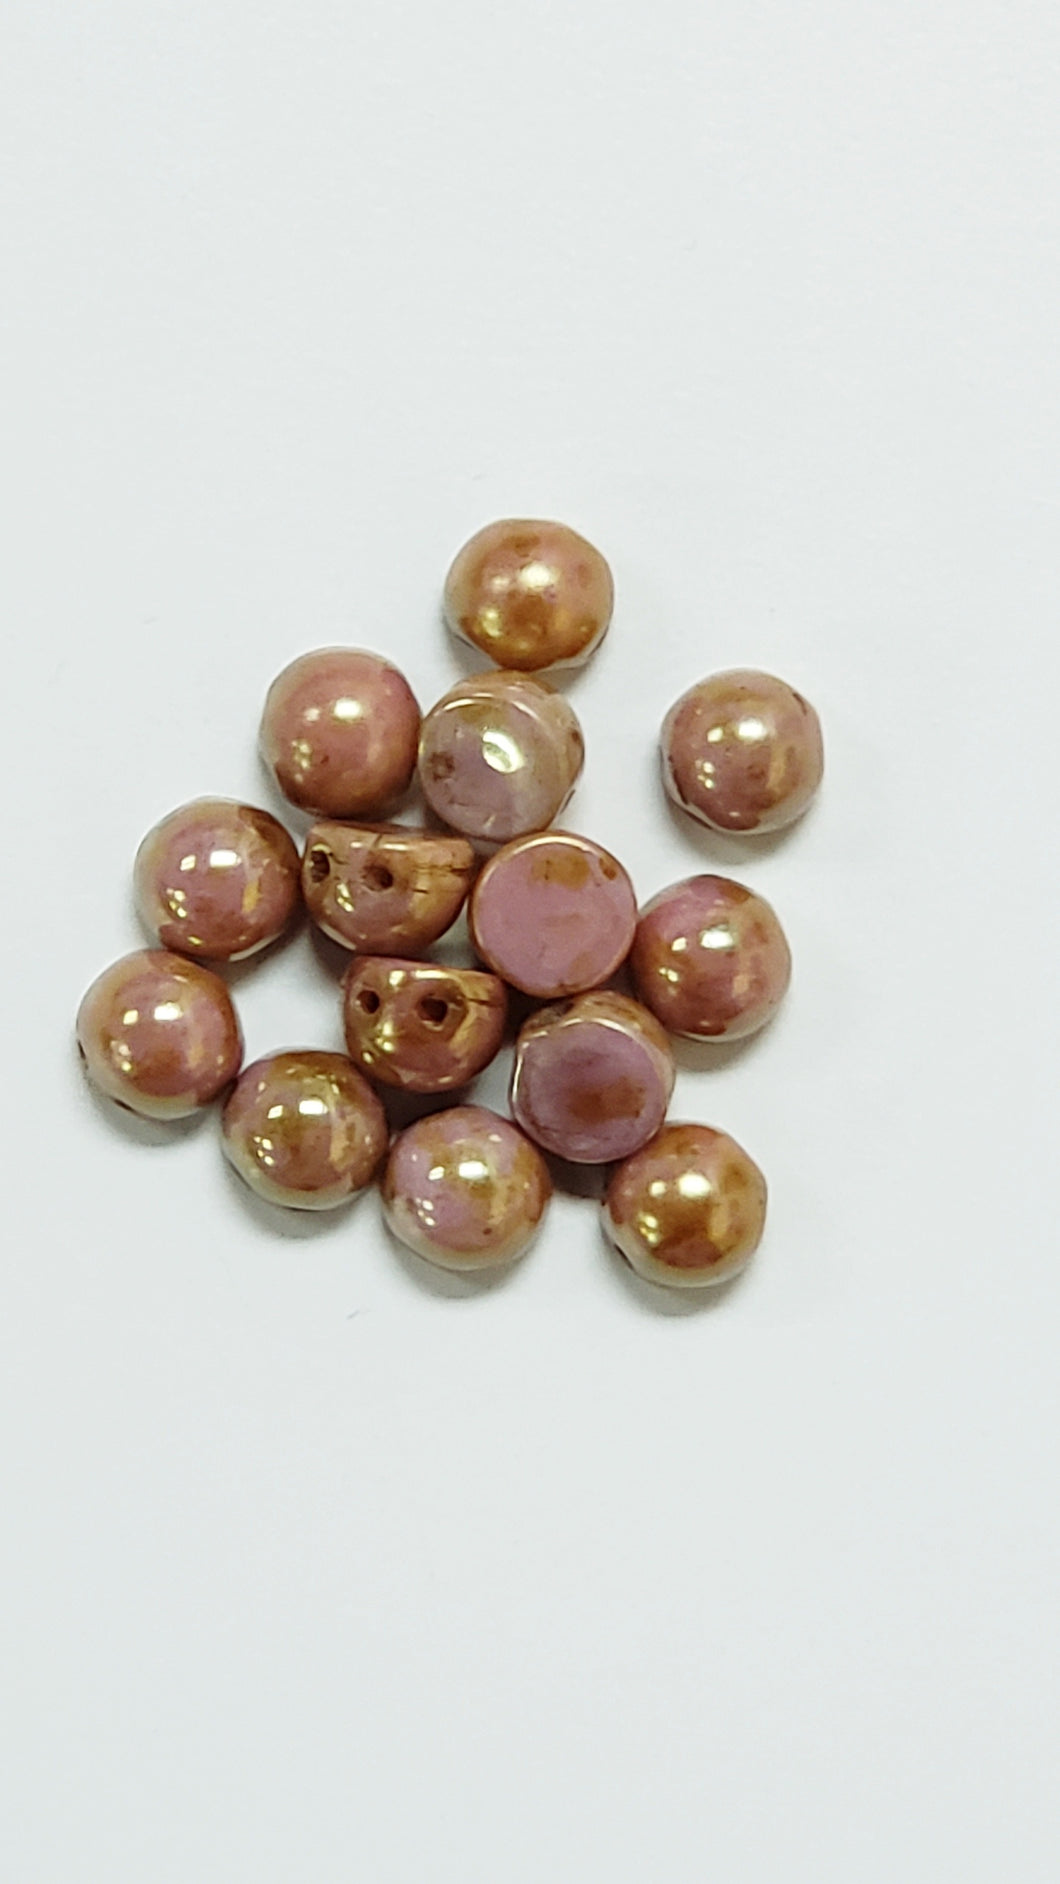 2 Hole Cabochon Rose Gold Topaz 25pcs 7mmD